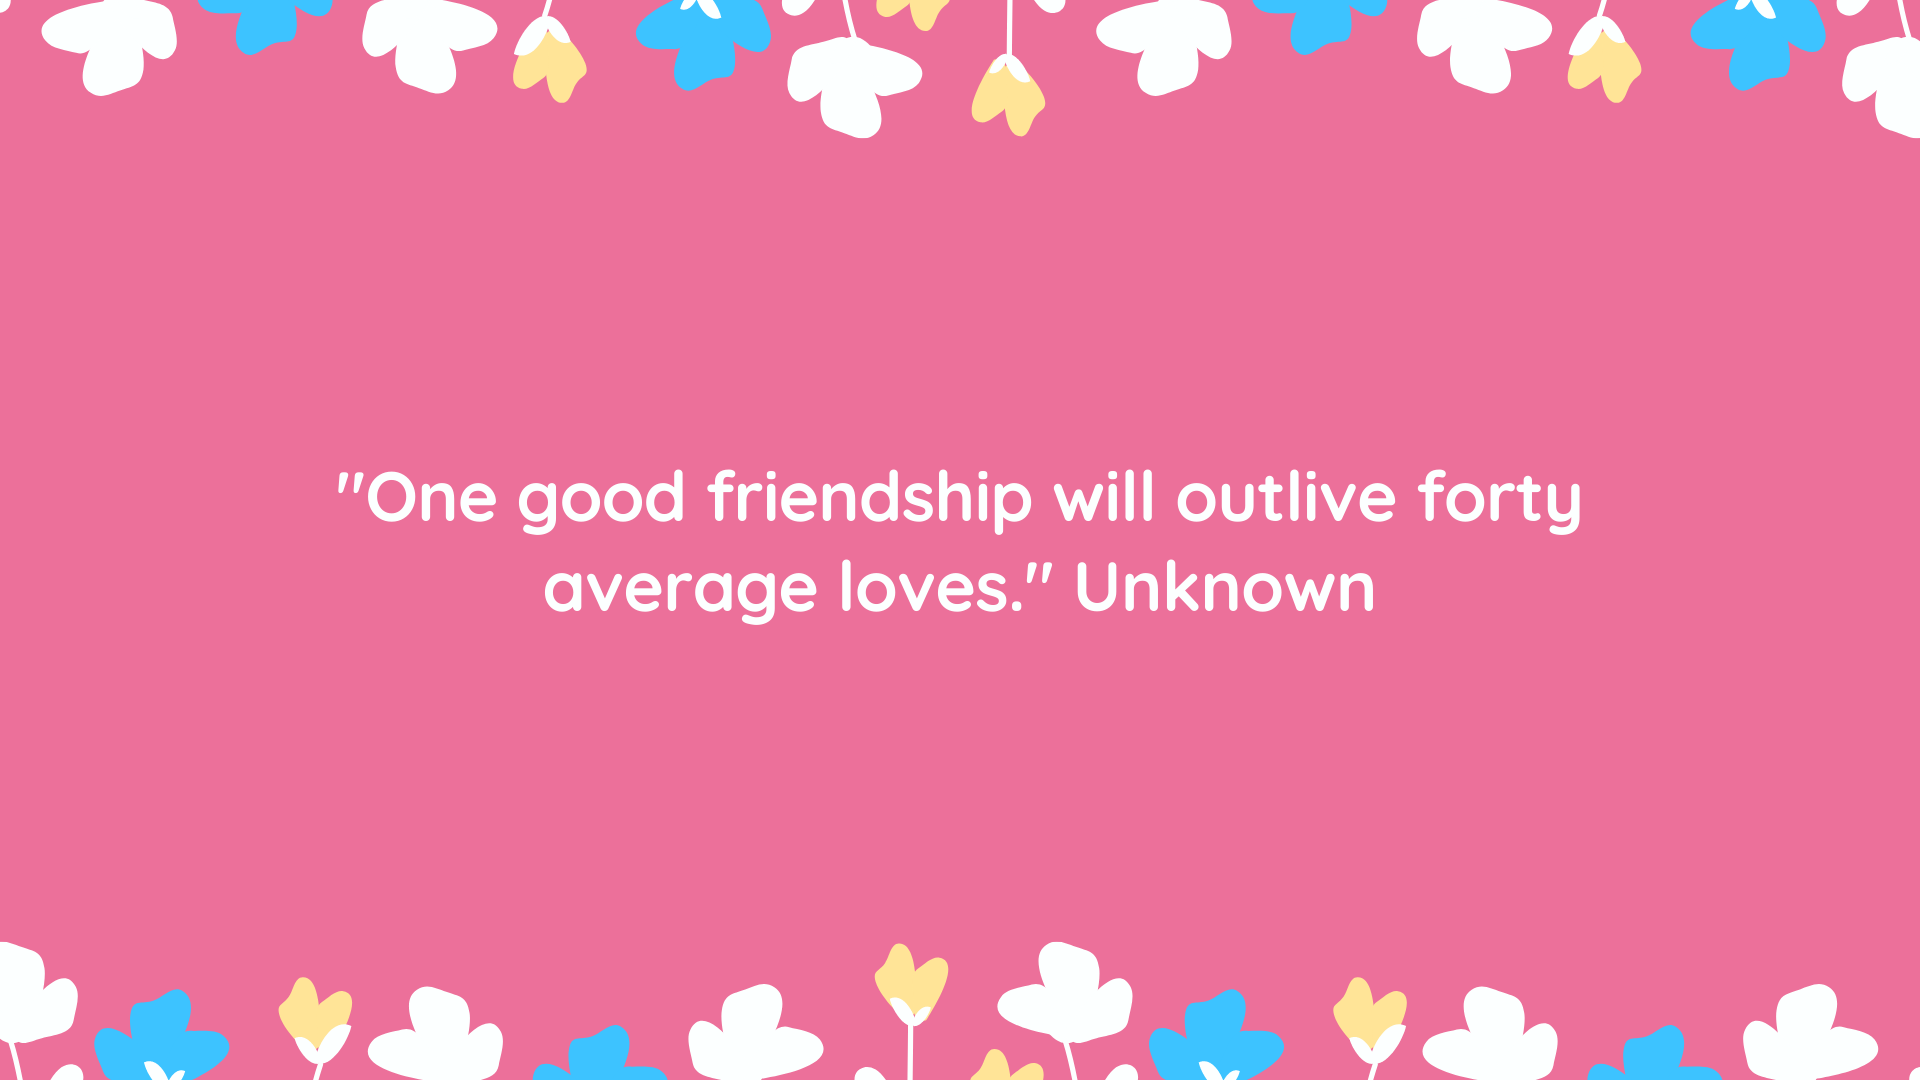 """One good friendship will outlive forty average loves."" Unknown"